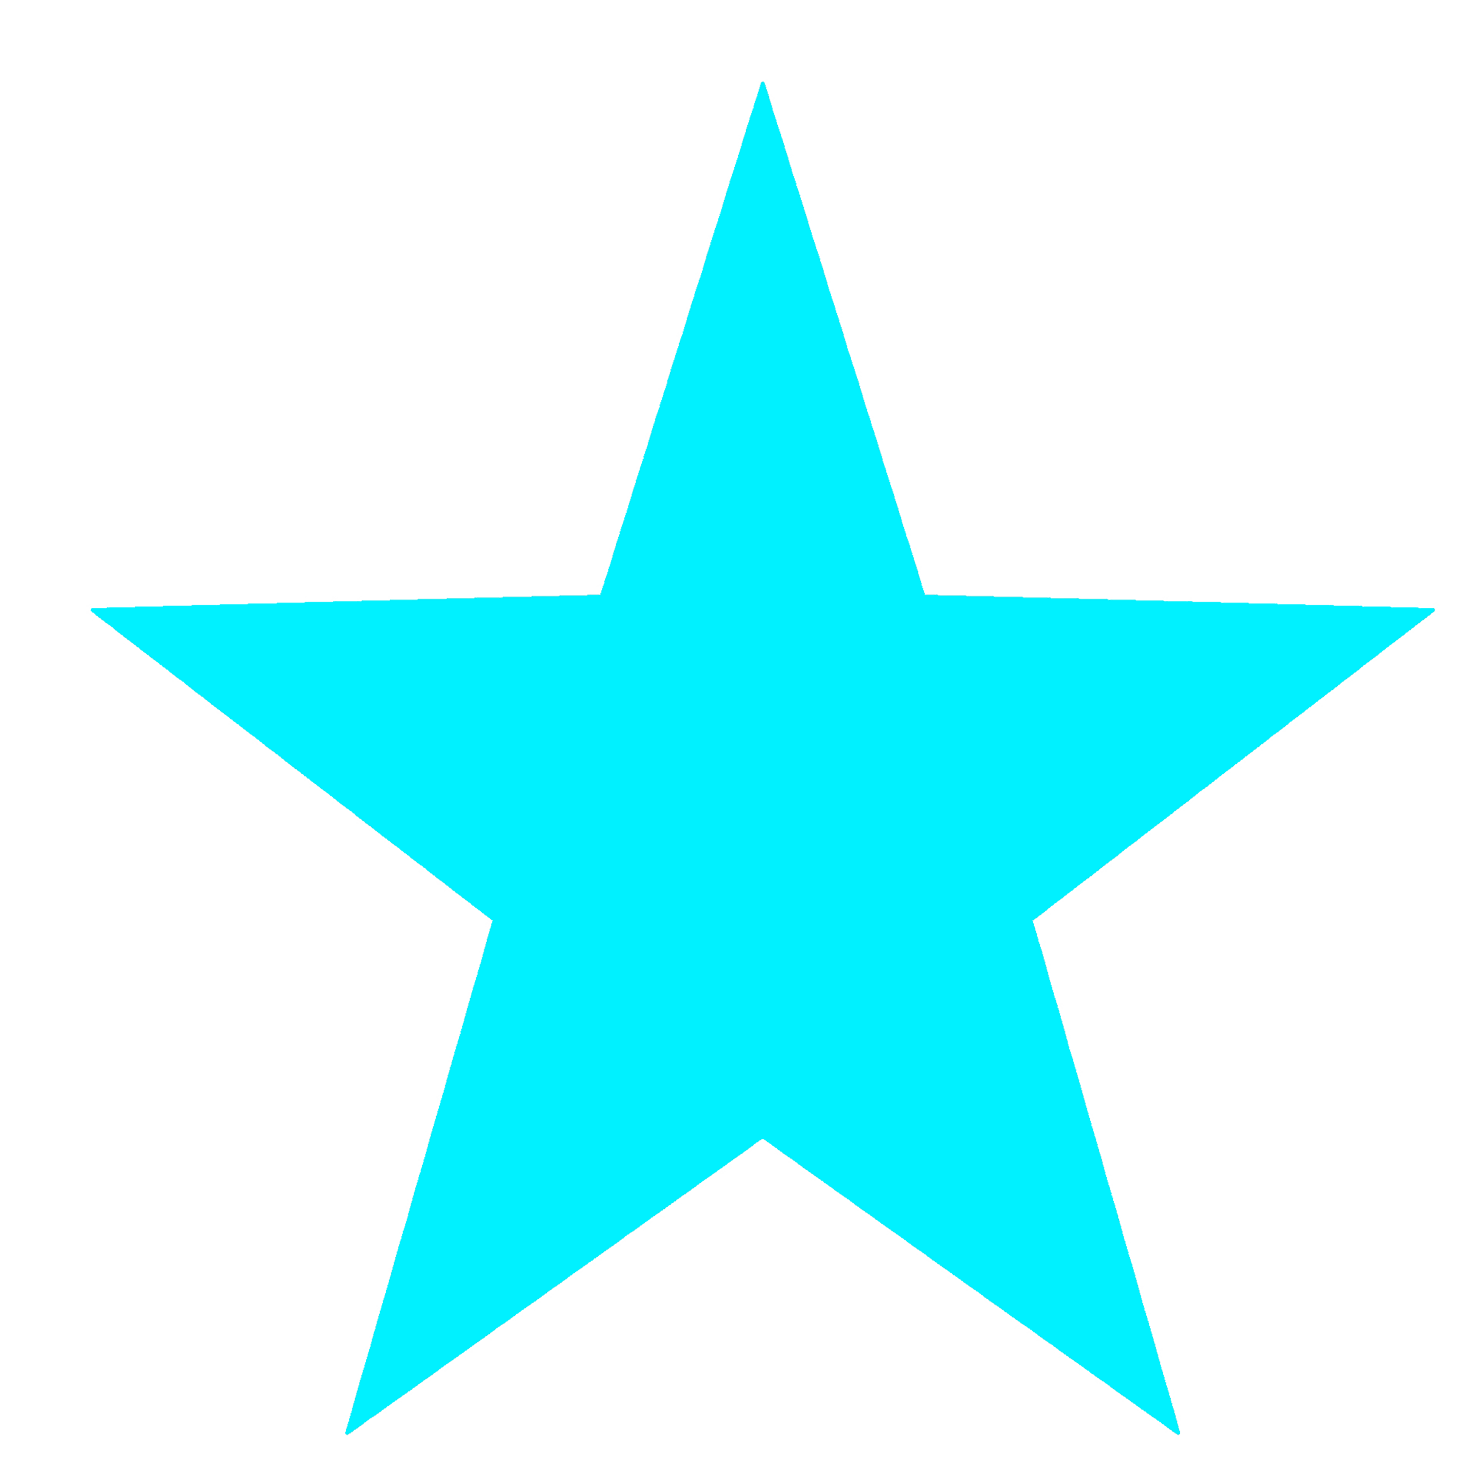 blue star template